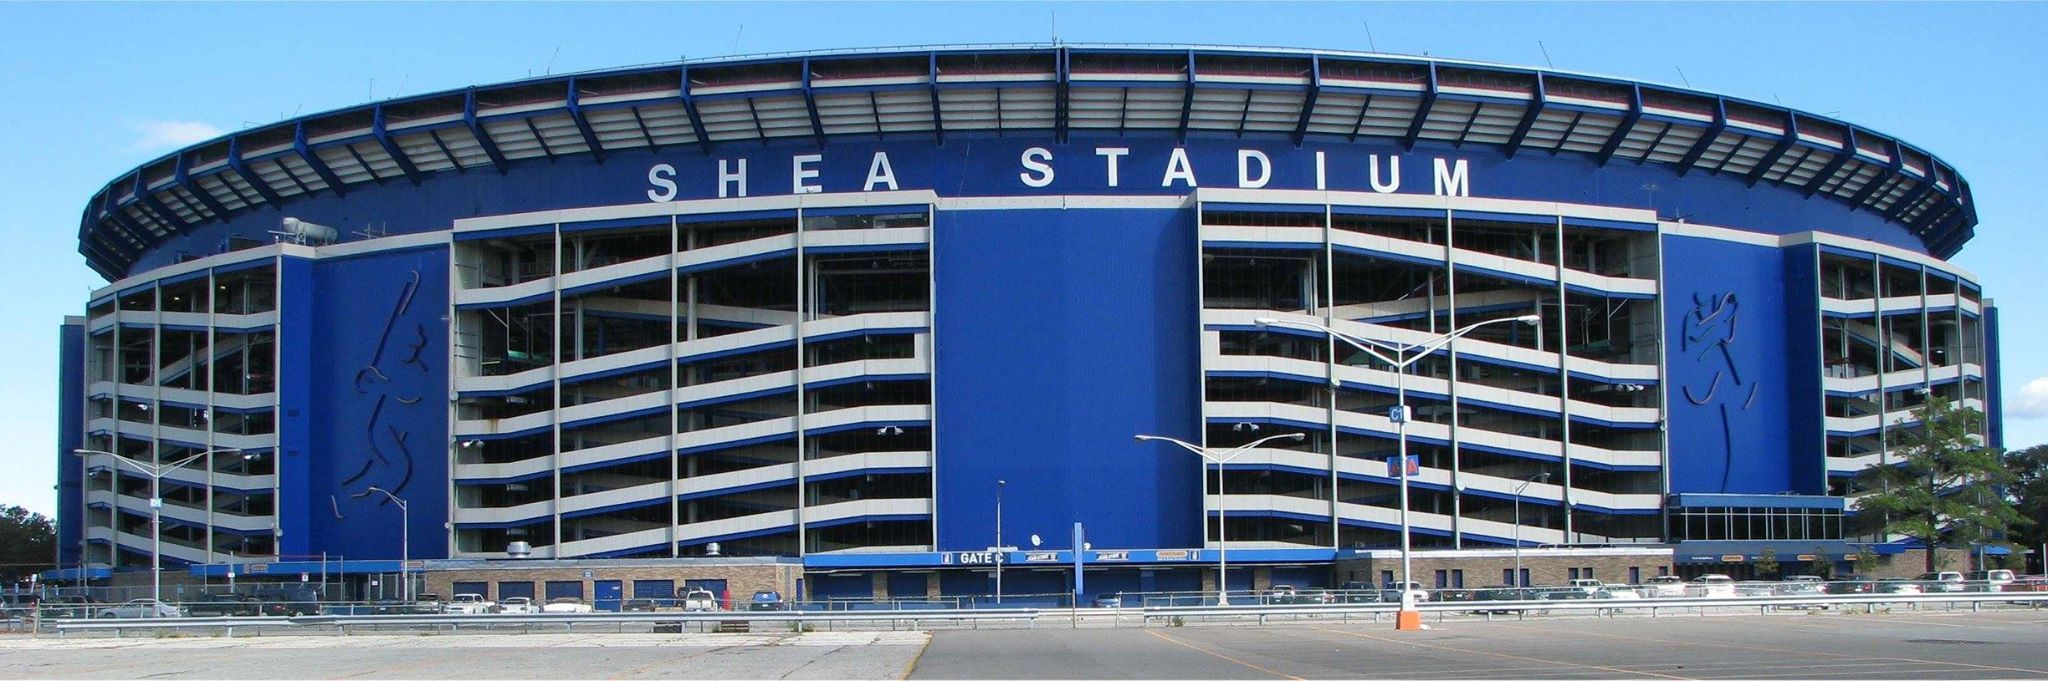 Shea From 2007 After The Decorative Panels Were Taken Down This One S From Wikimedia We Get The Photos Here From A Wide Range Shea Stadium Lets Go Mets Baseball Park